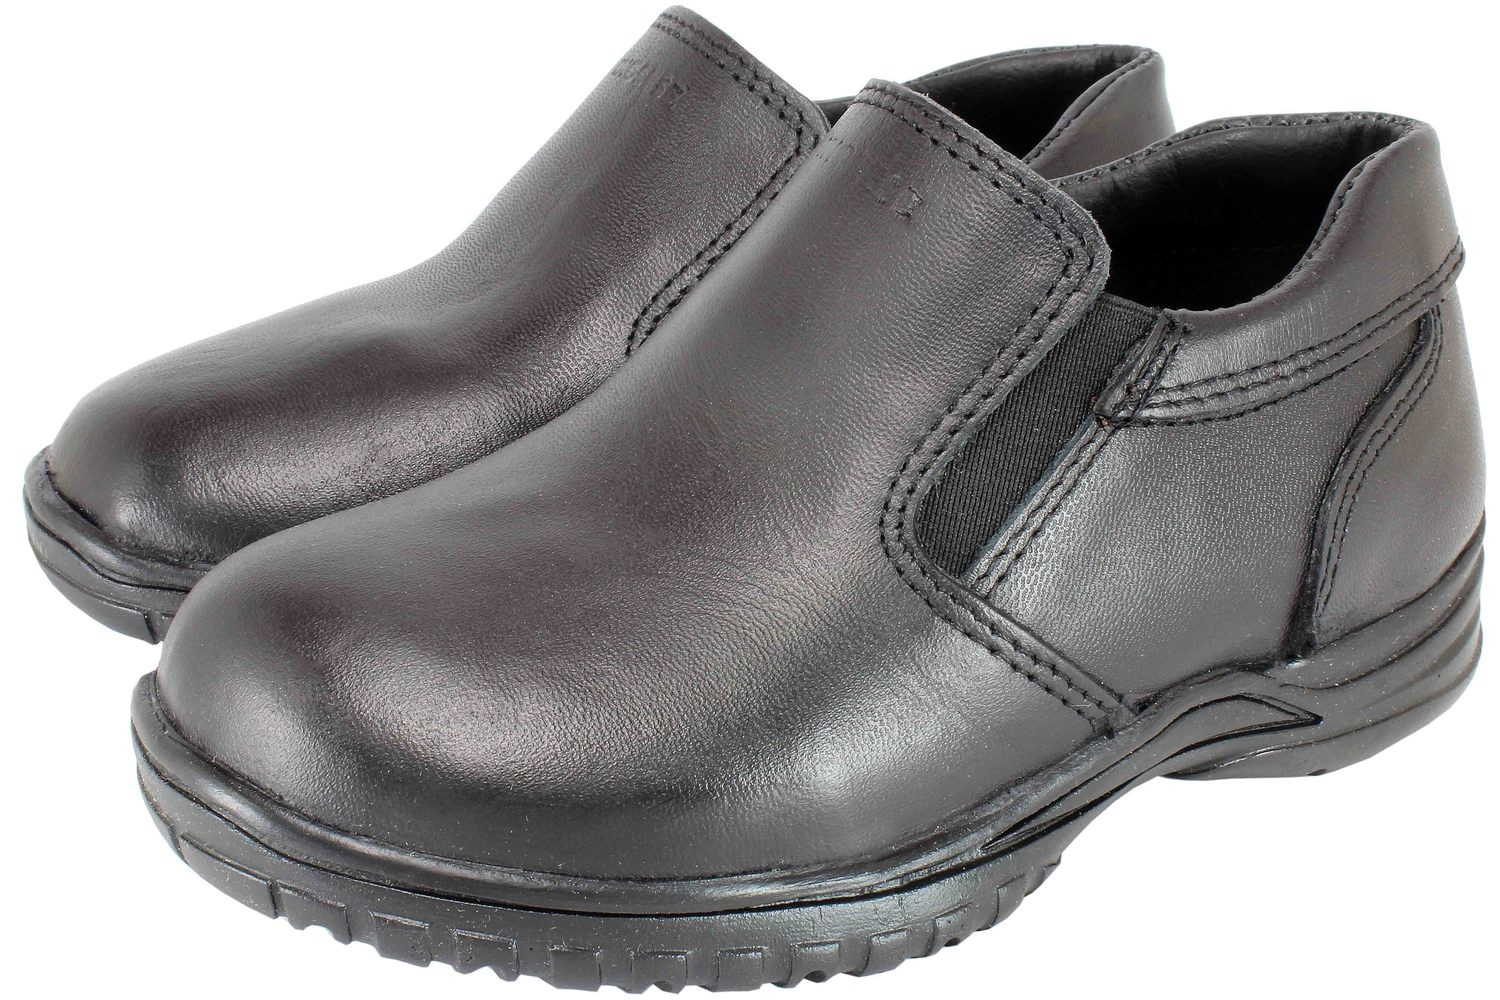 Boys Shoes Genuine Leather Black - SUGGESTED RETAIL PRICE $30.00 - WHOLESALE PRICE $7 - Minimum purchase 9 pairs